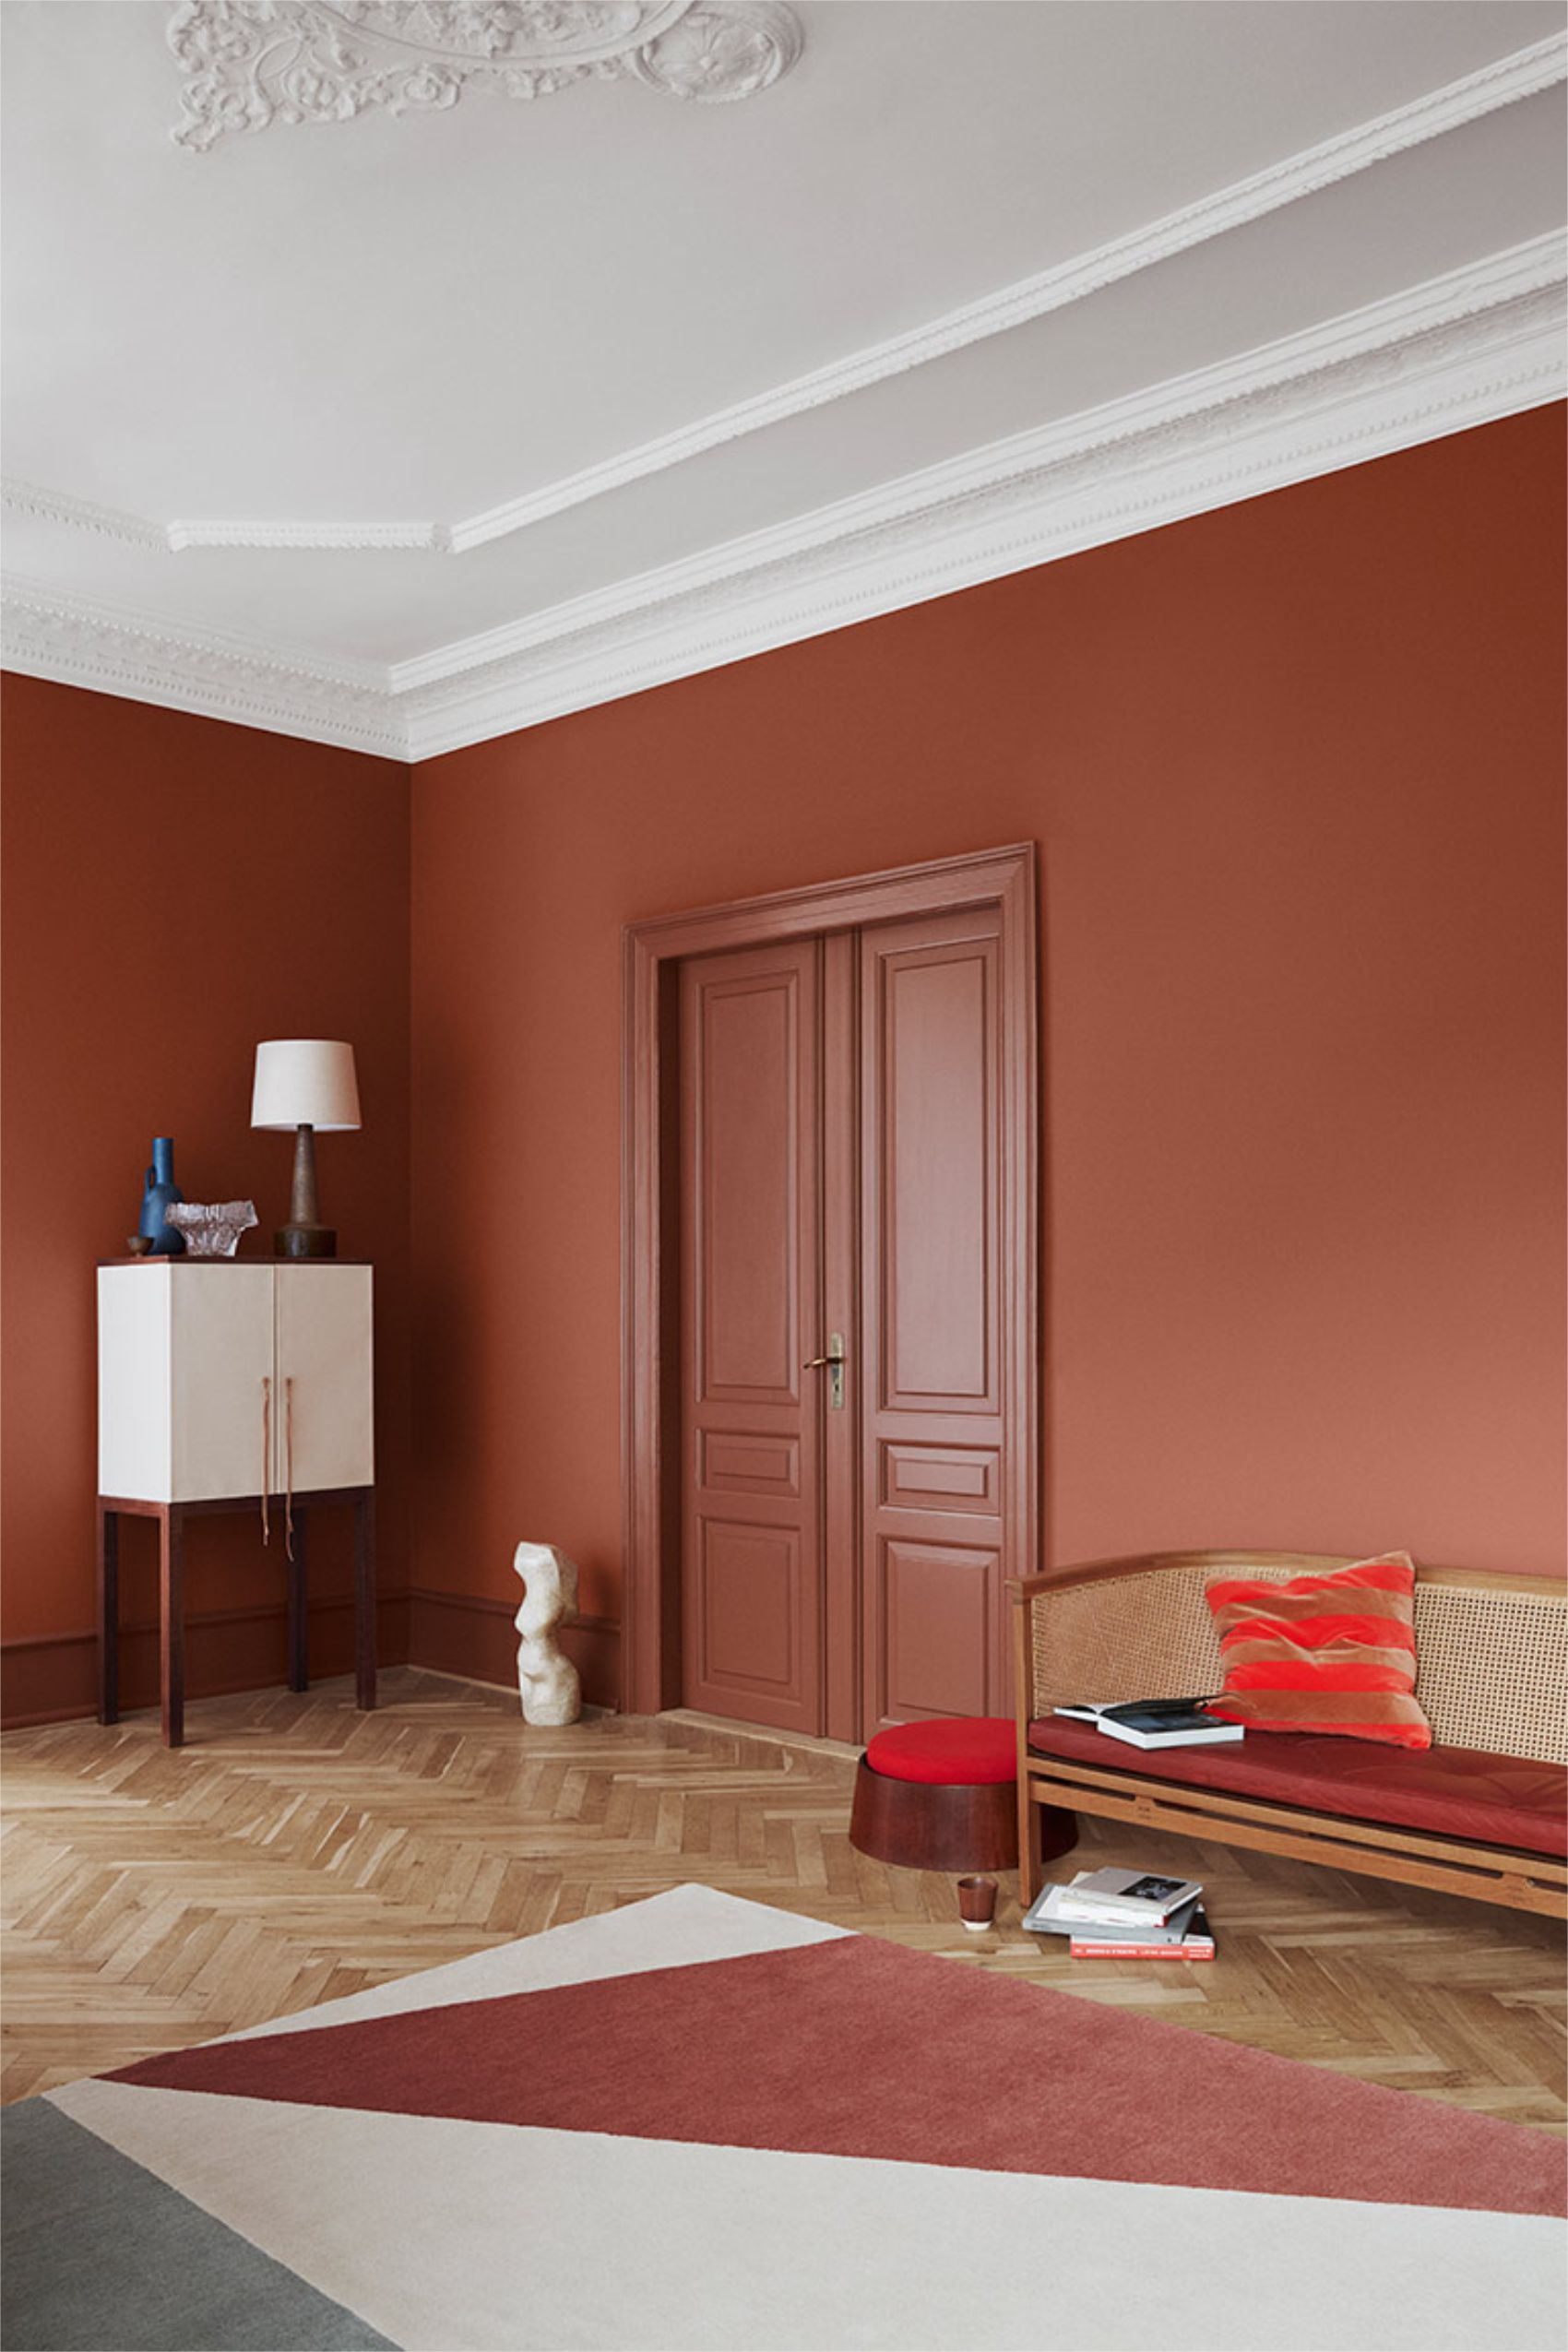 Best Interior Paint 2020.The Scandinavian Interior Colour Trends Of 2020 From Jotun